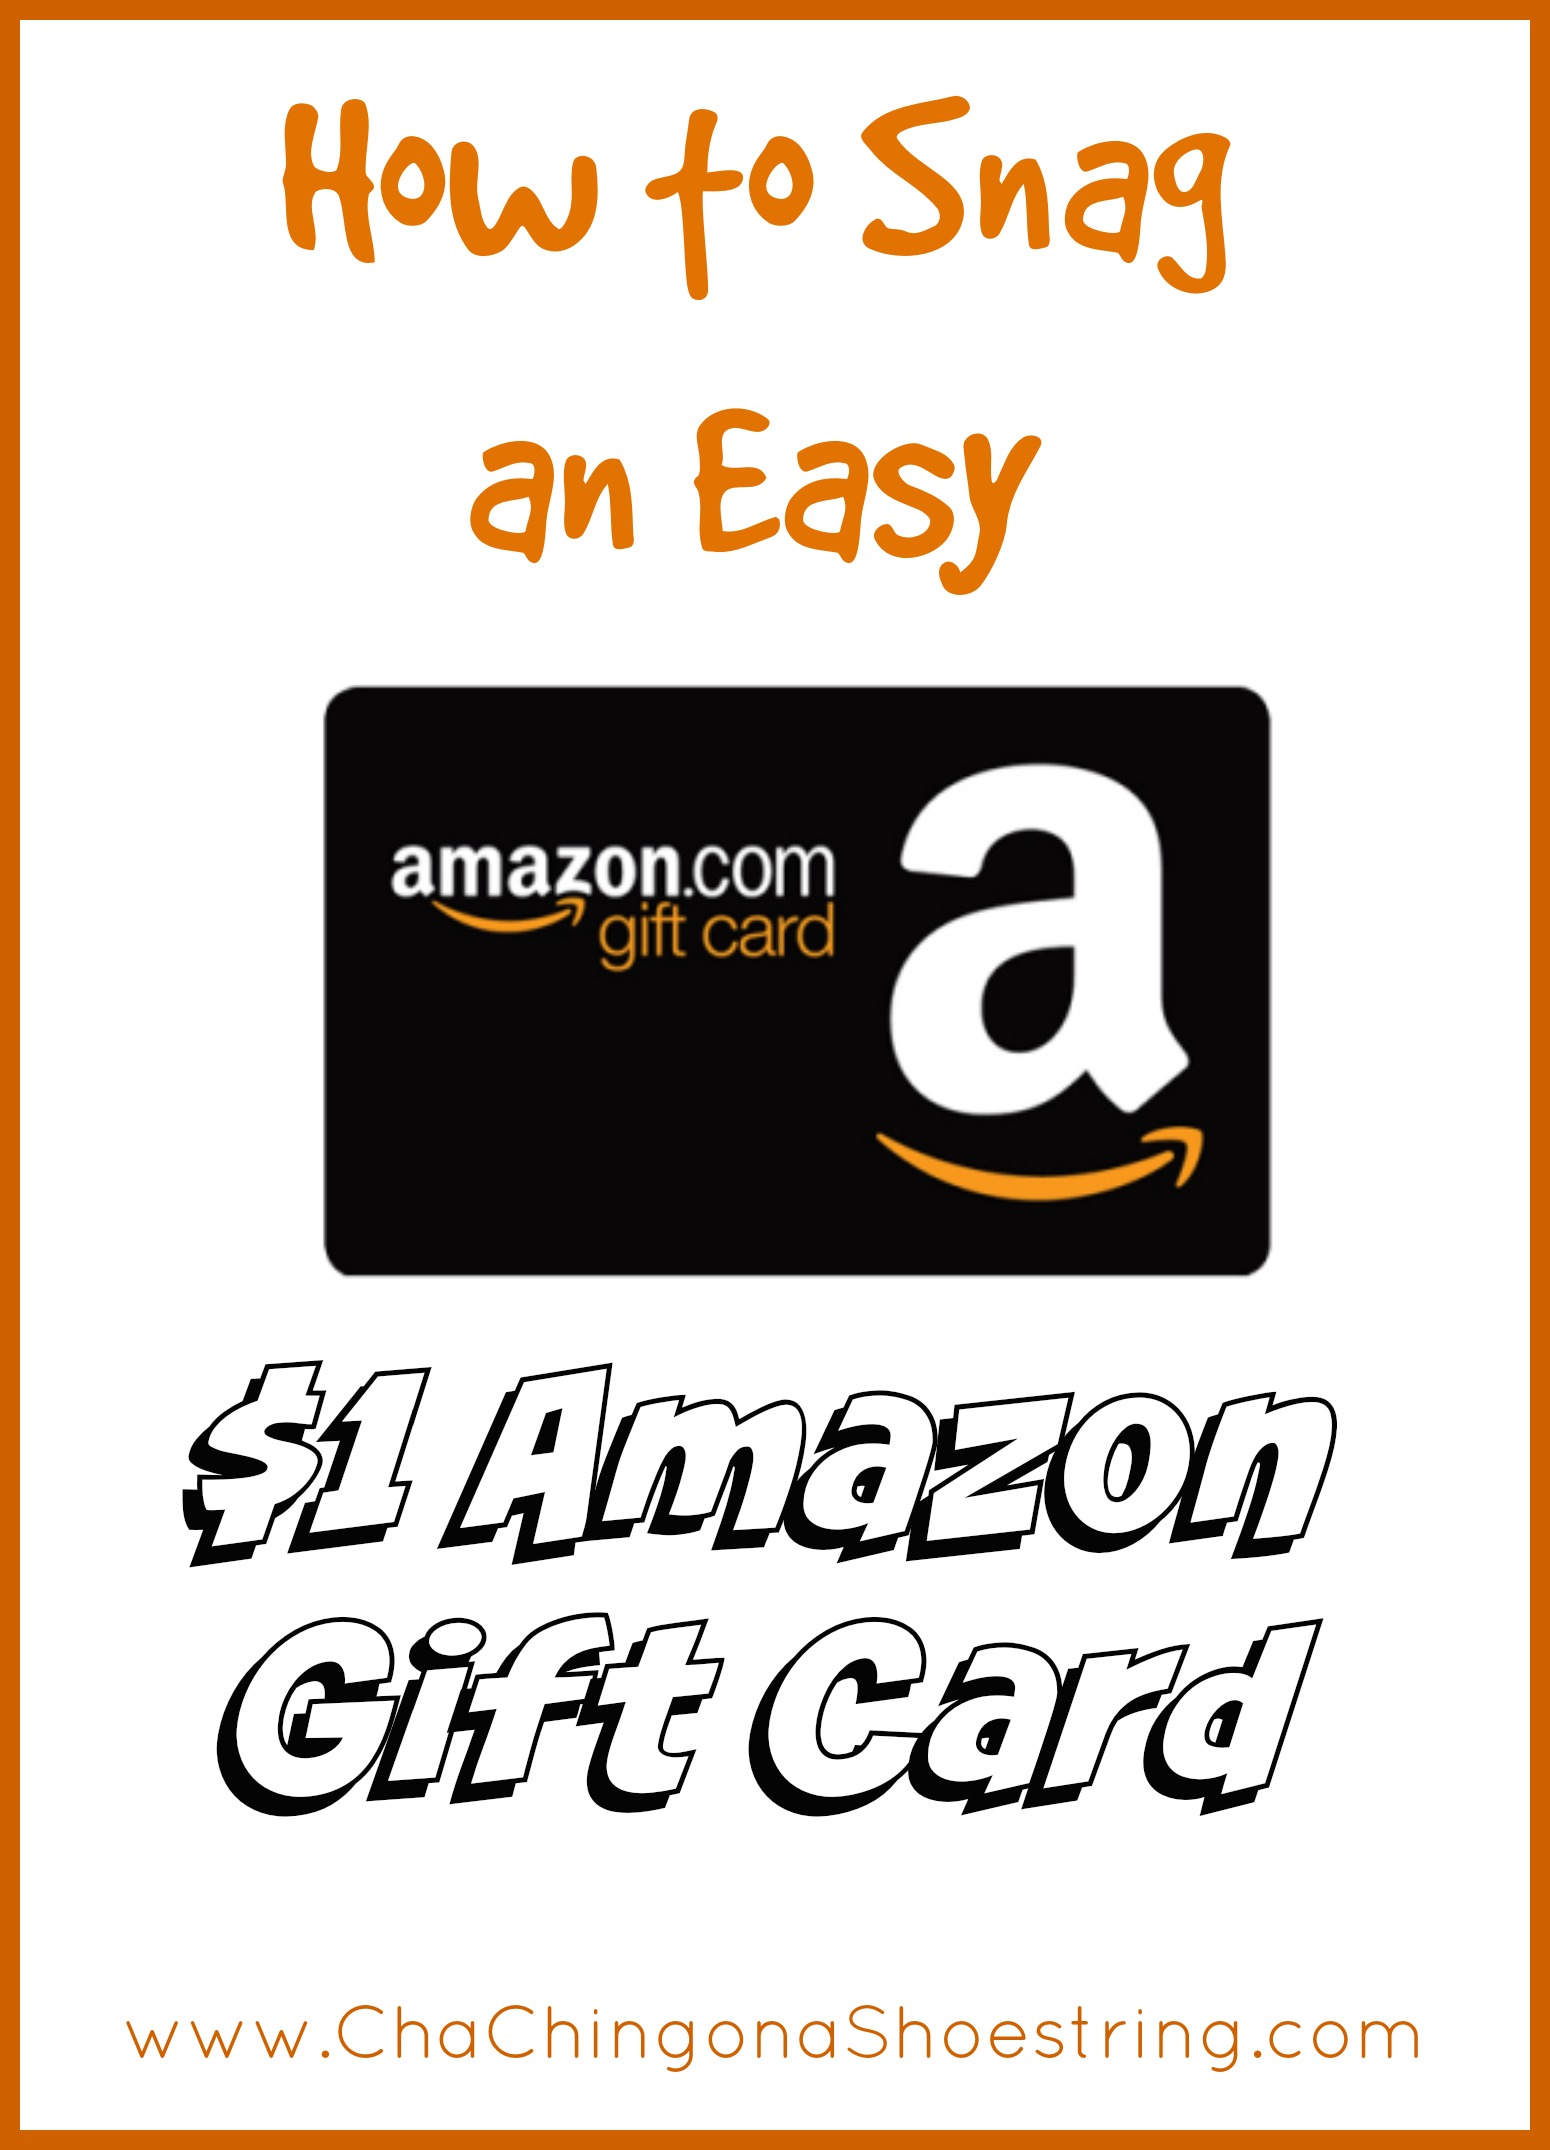 How to Snag an Easy $1 Amazon Gift Card